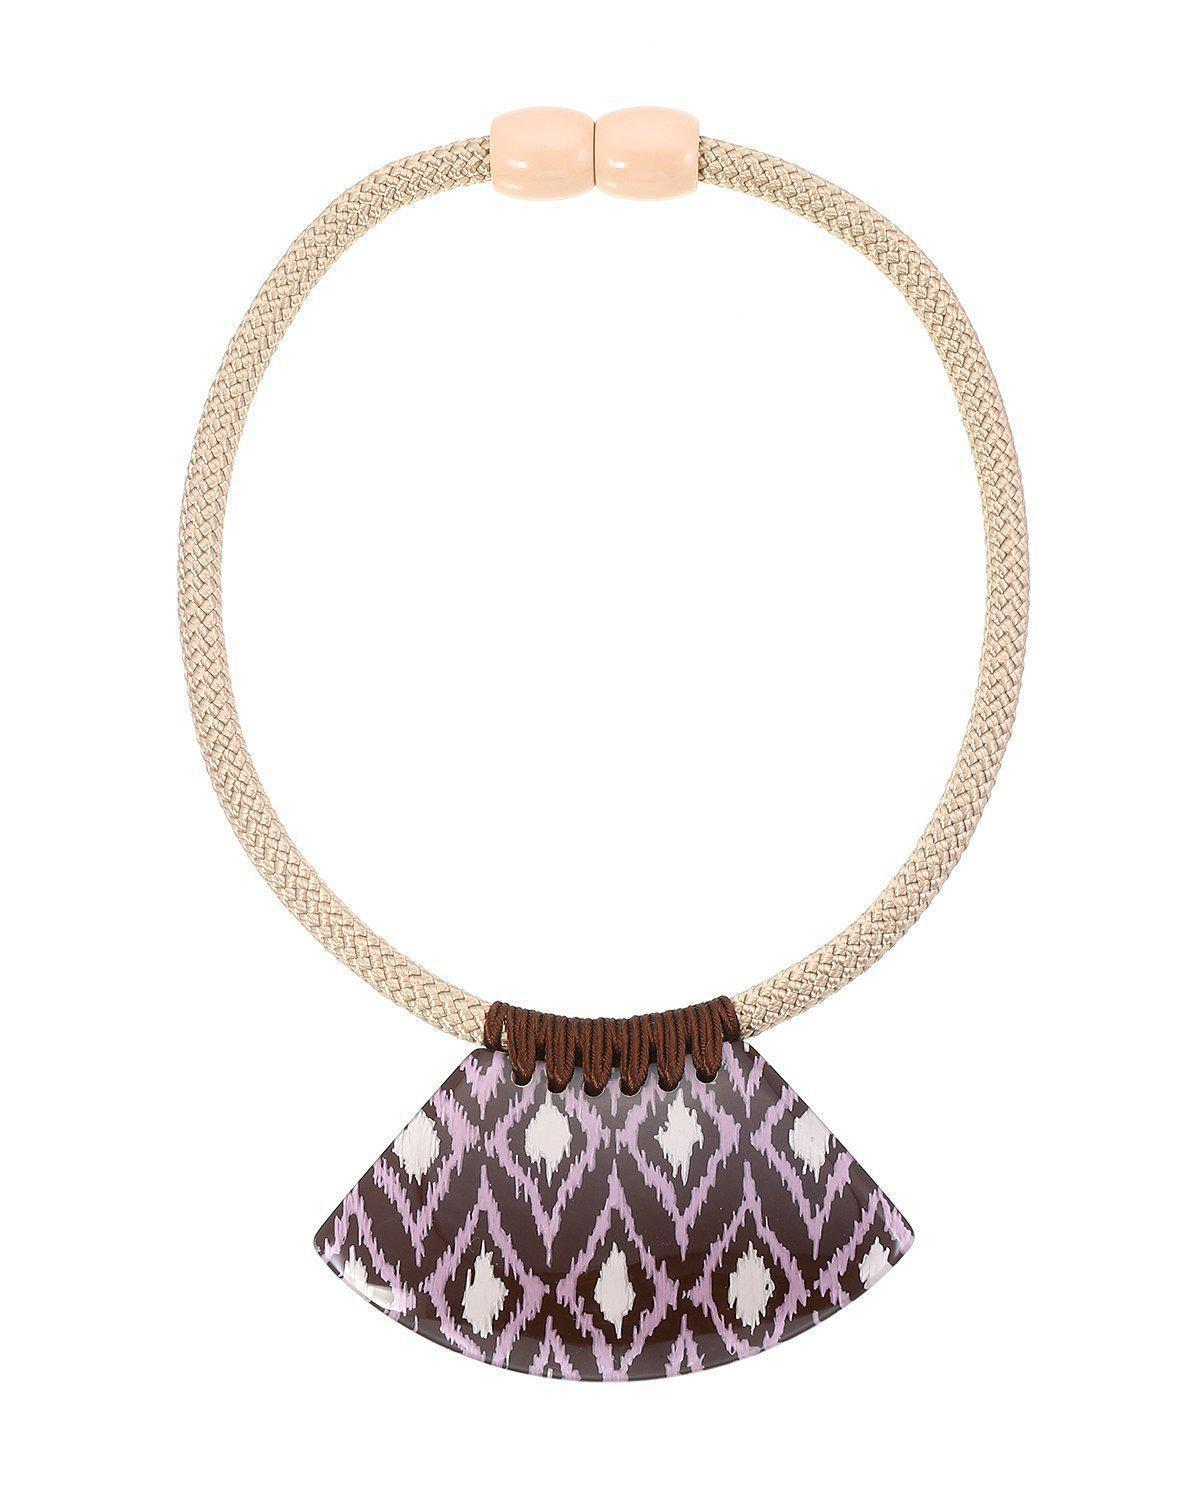 Zsiska Ikkat Brown and Purple Pendant on Choker Necklace-Jewellery-Zsiska-Temples and Markets